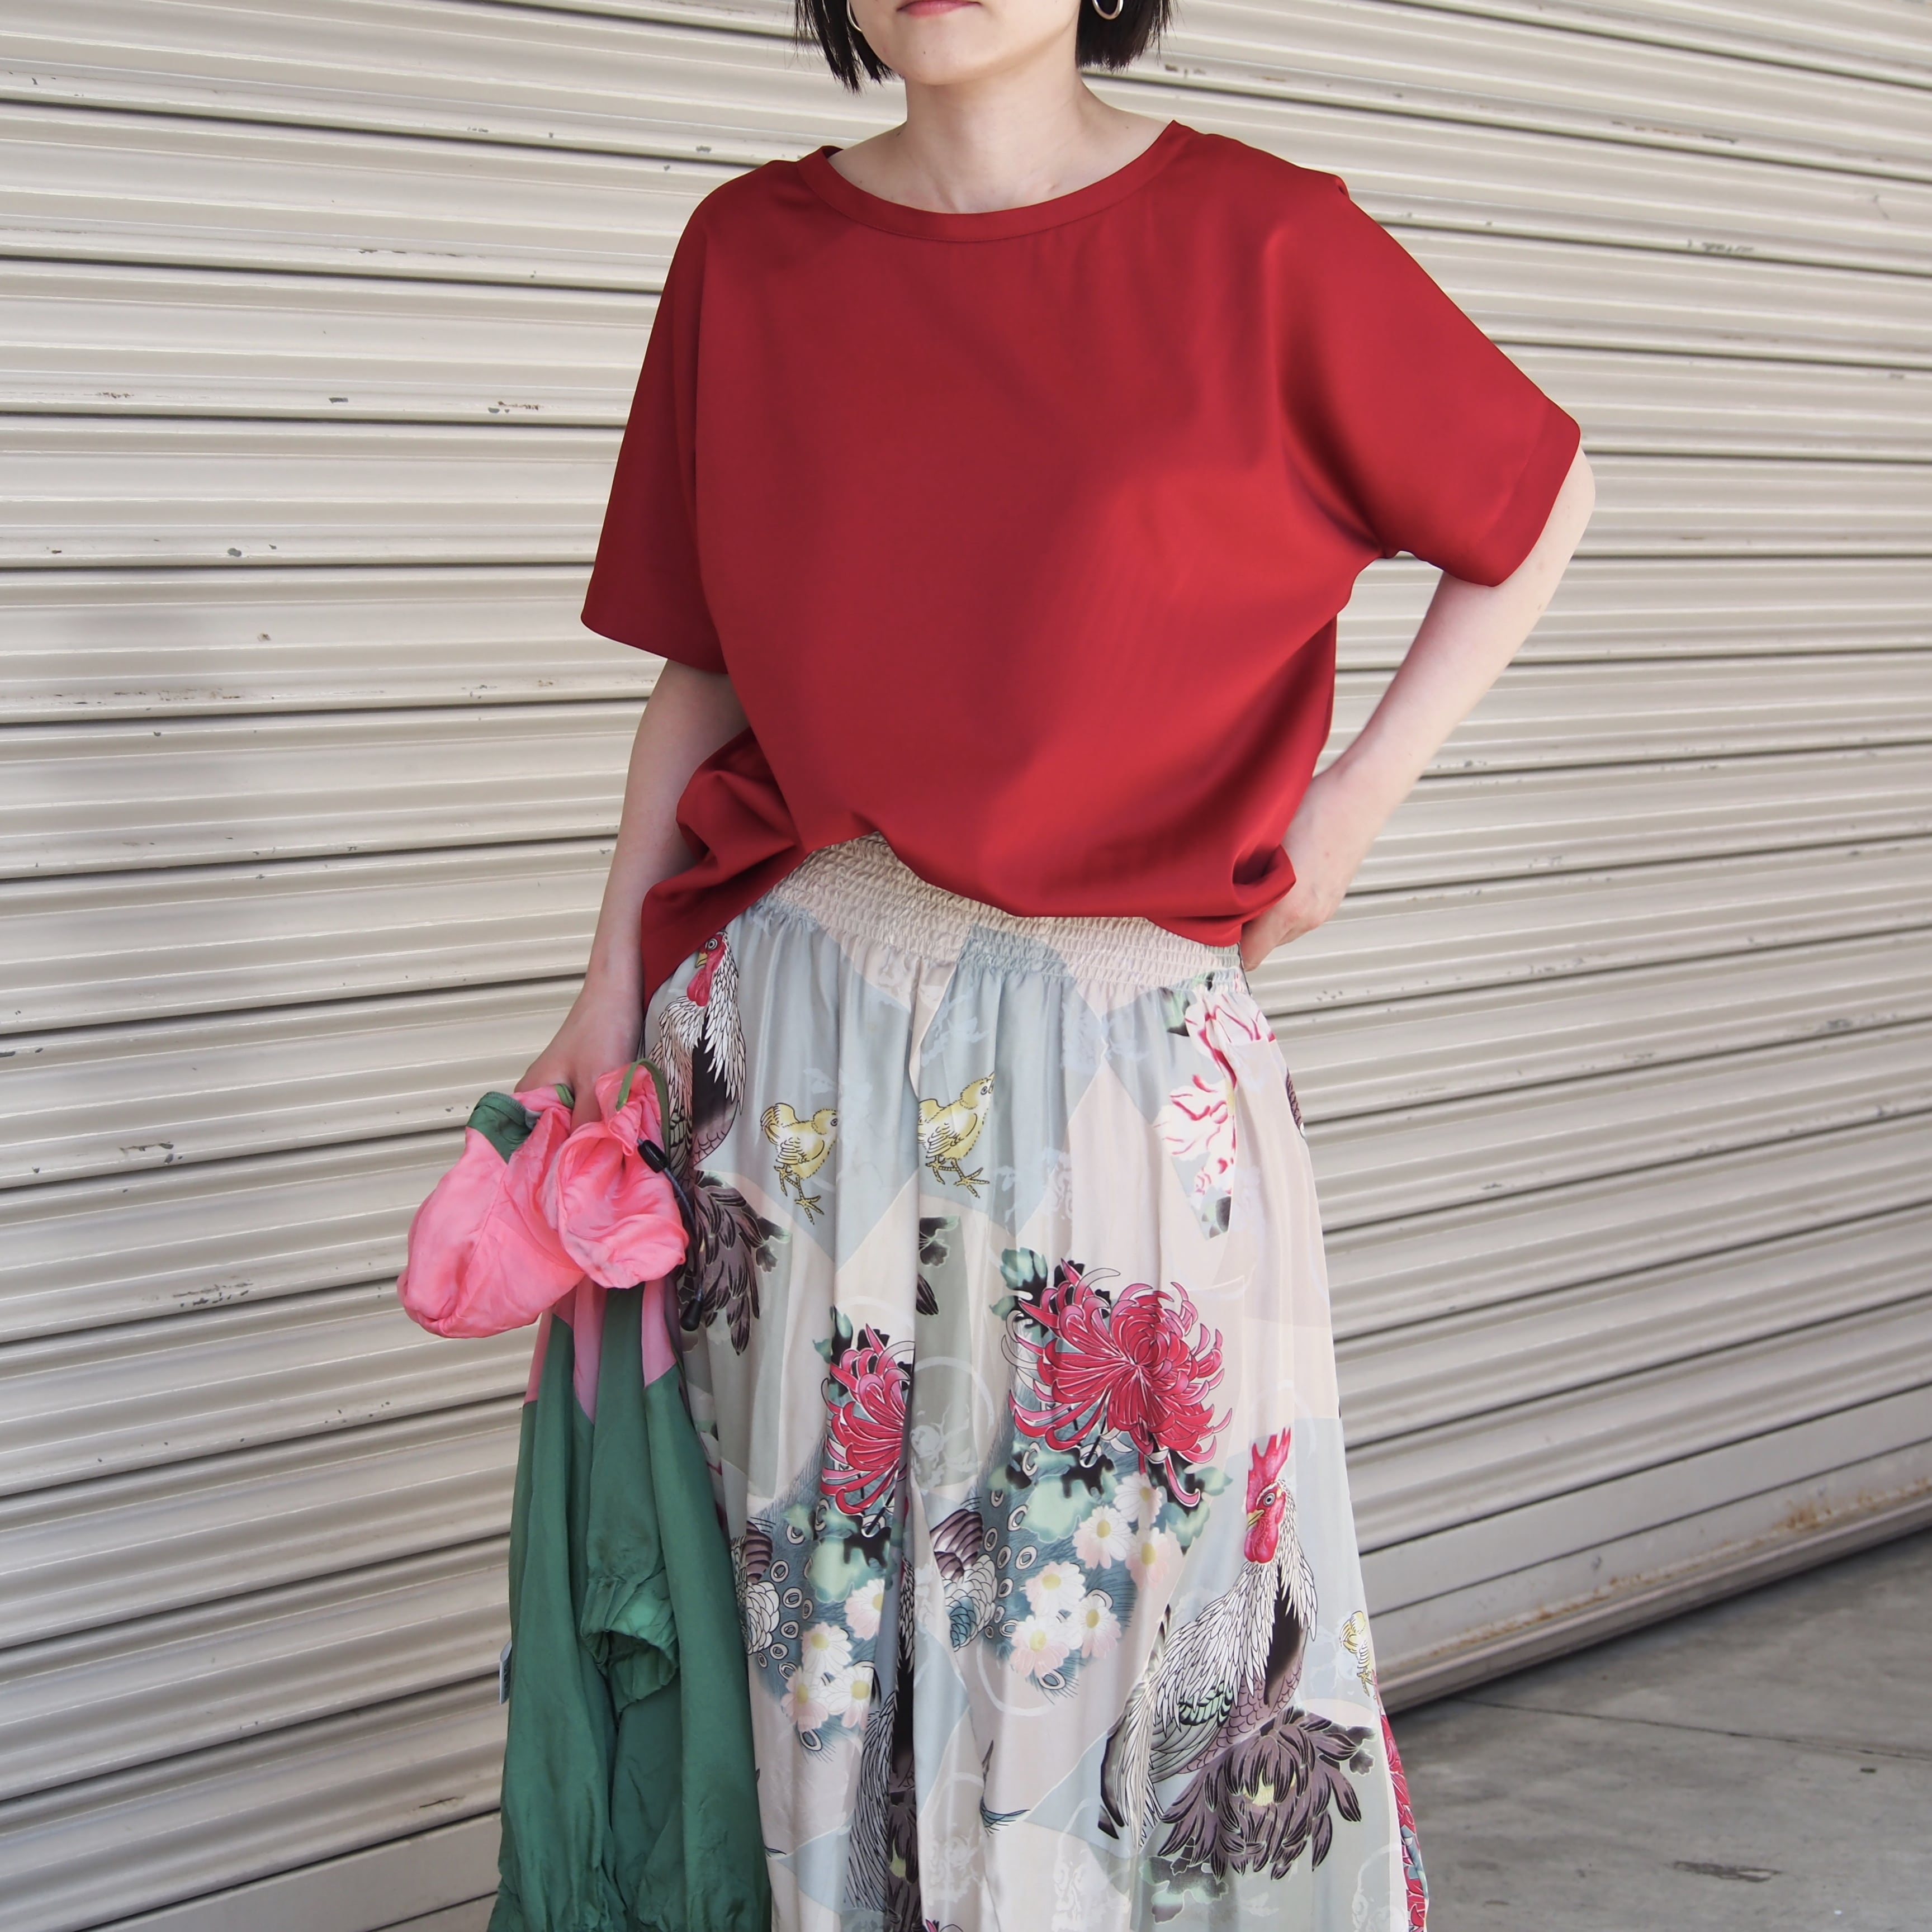 【ethical hippi】wide t-shirt (antique red)/ 【エシカル ヒッピ】ワイド Tシャツ(アンティーク レッド)